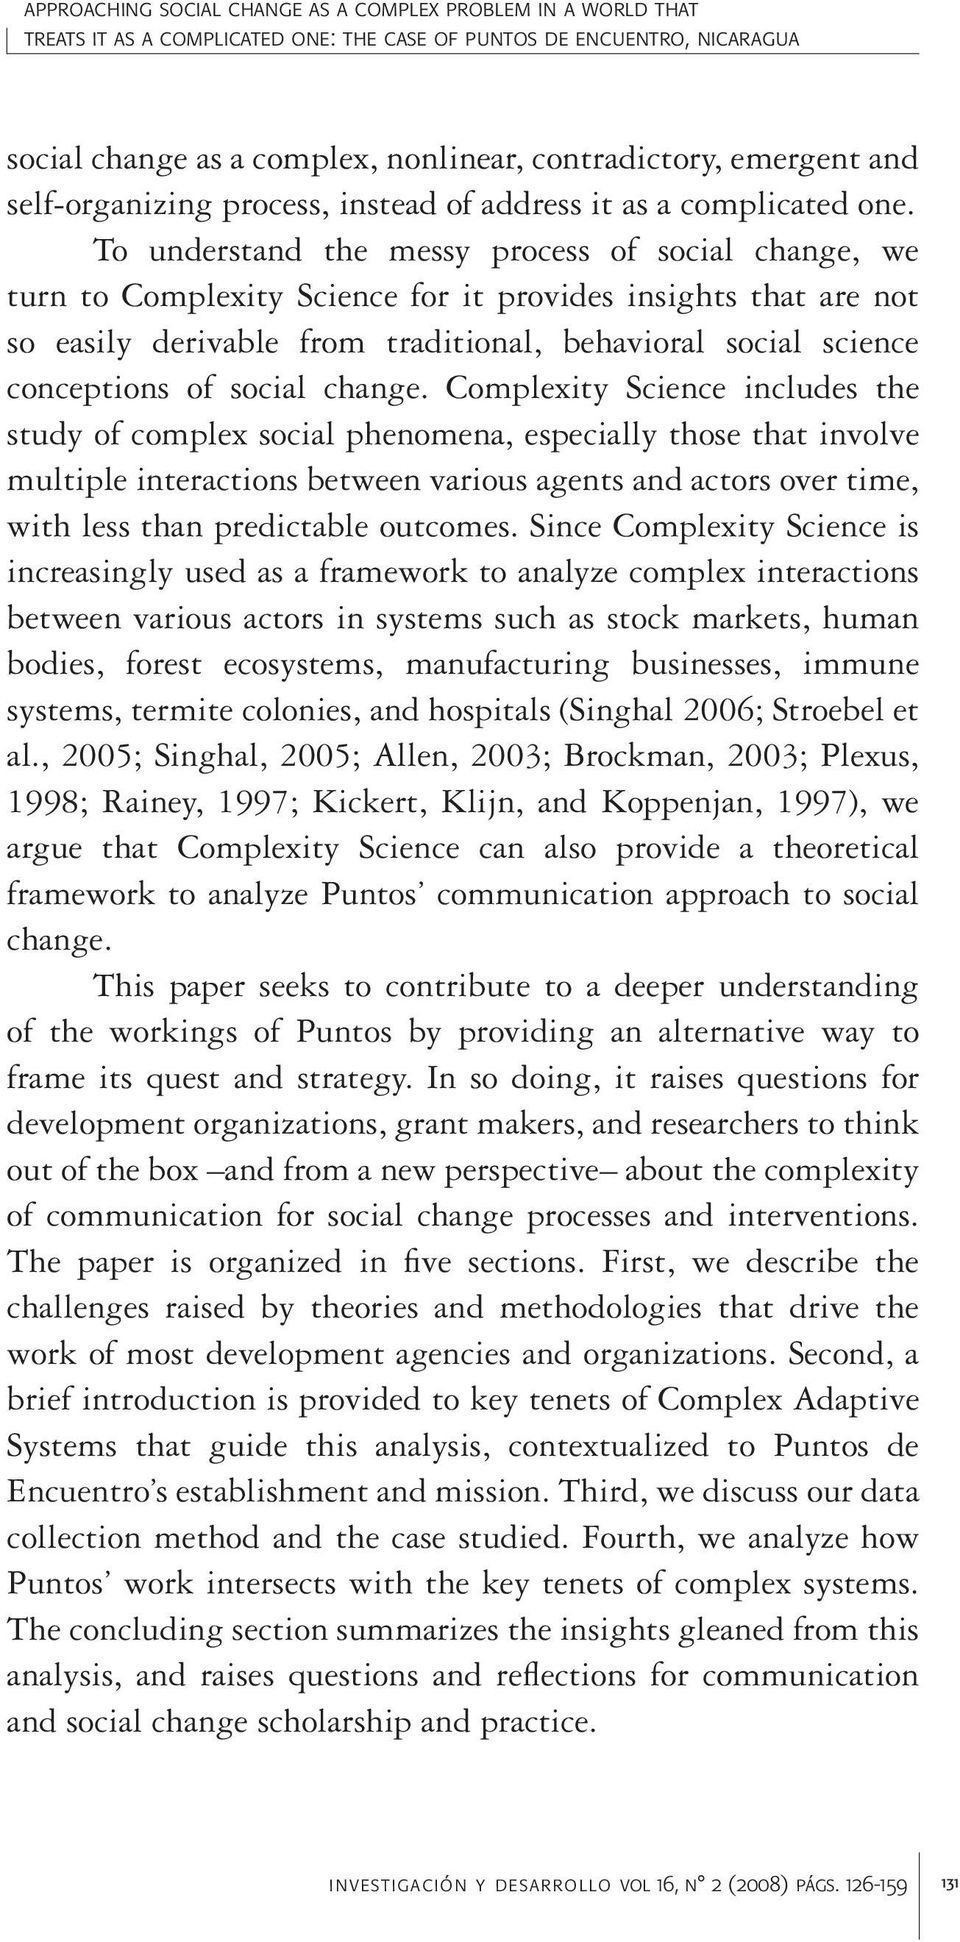 To understand the messy process of social change, we turn to Complexity Science for it provides insights that are not so easily derivable from traditional, behavioral social science conceptions of